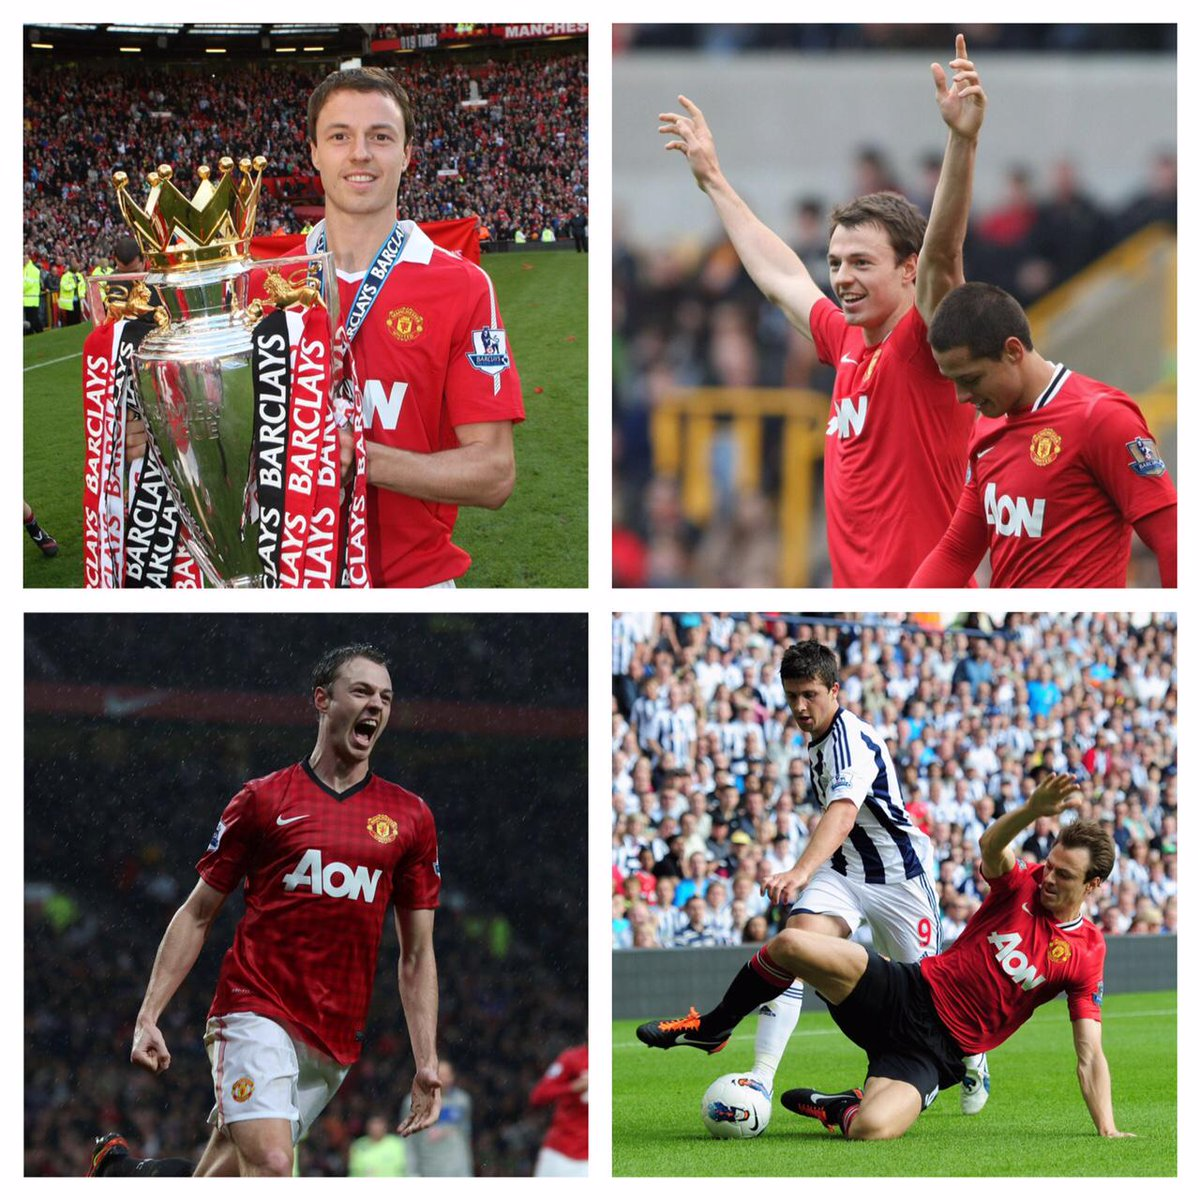 Good luck to Jonny Evans from everyone at #mufc following his permanent move to West Bromwich Albion.